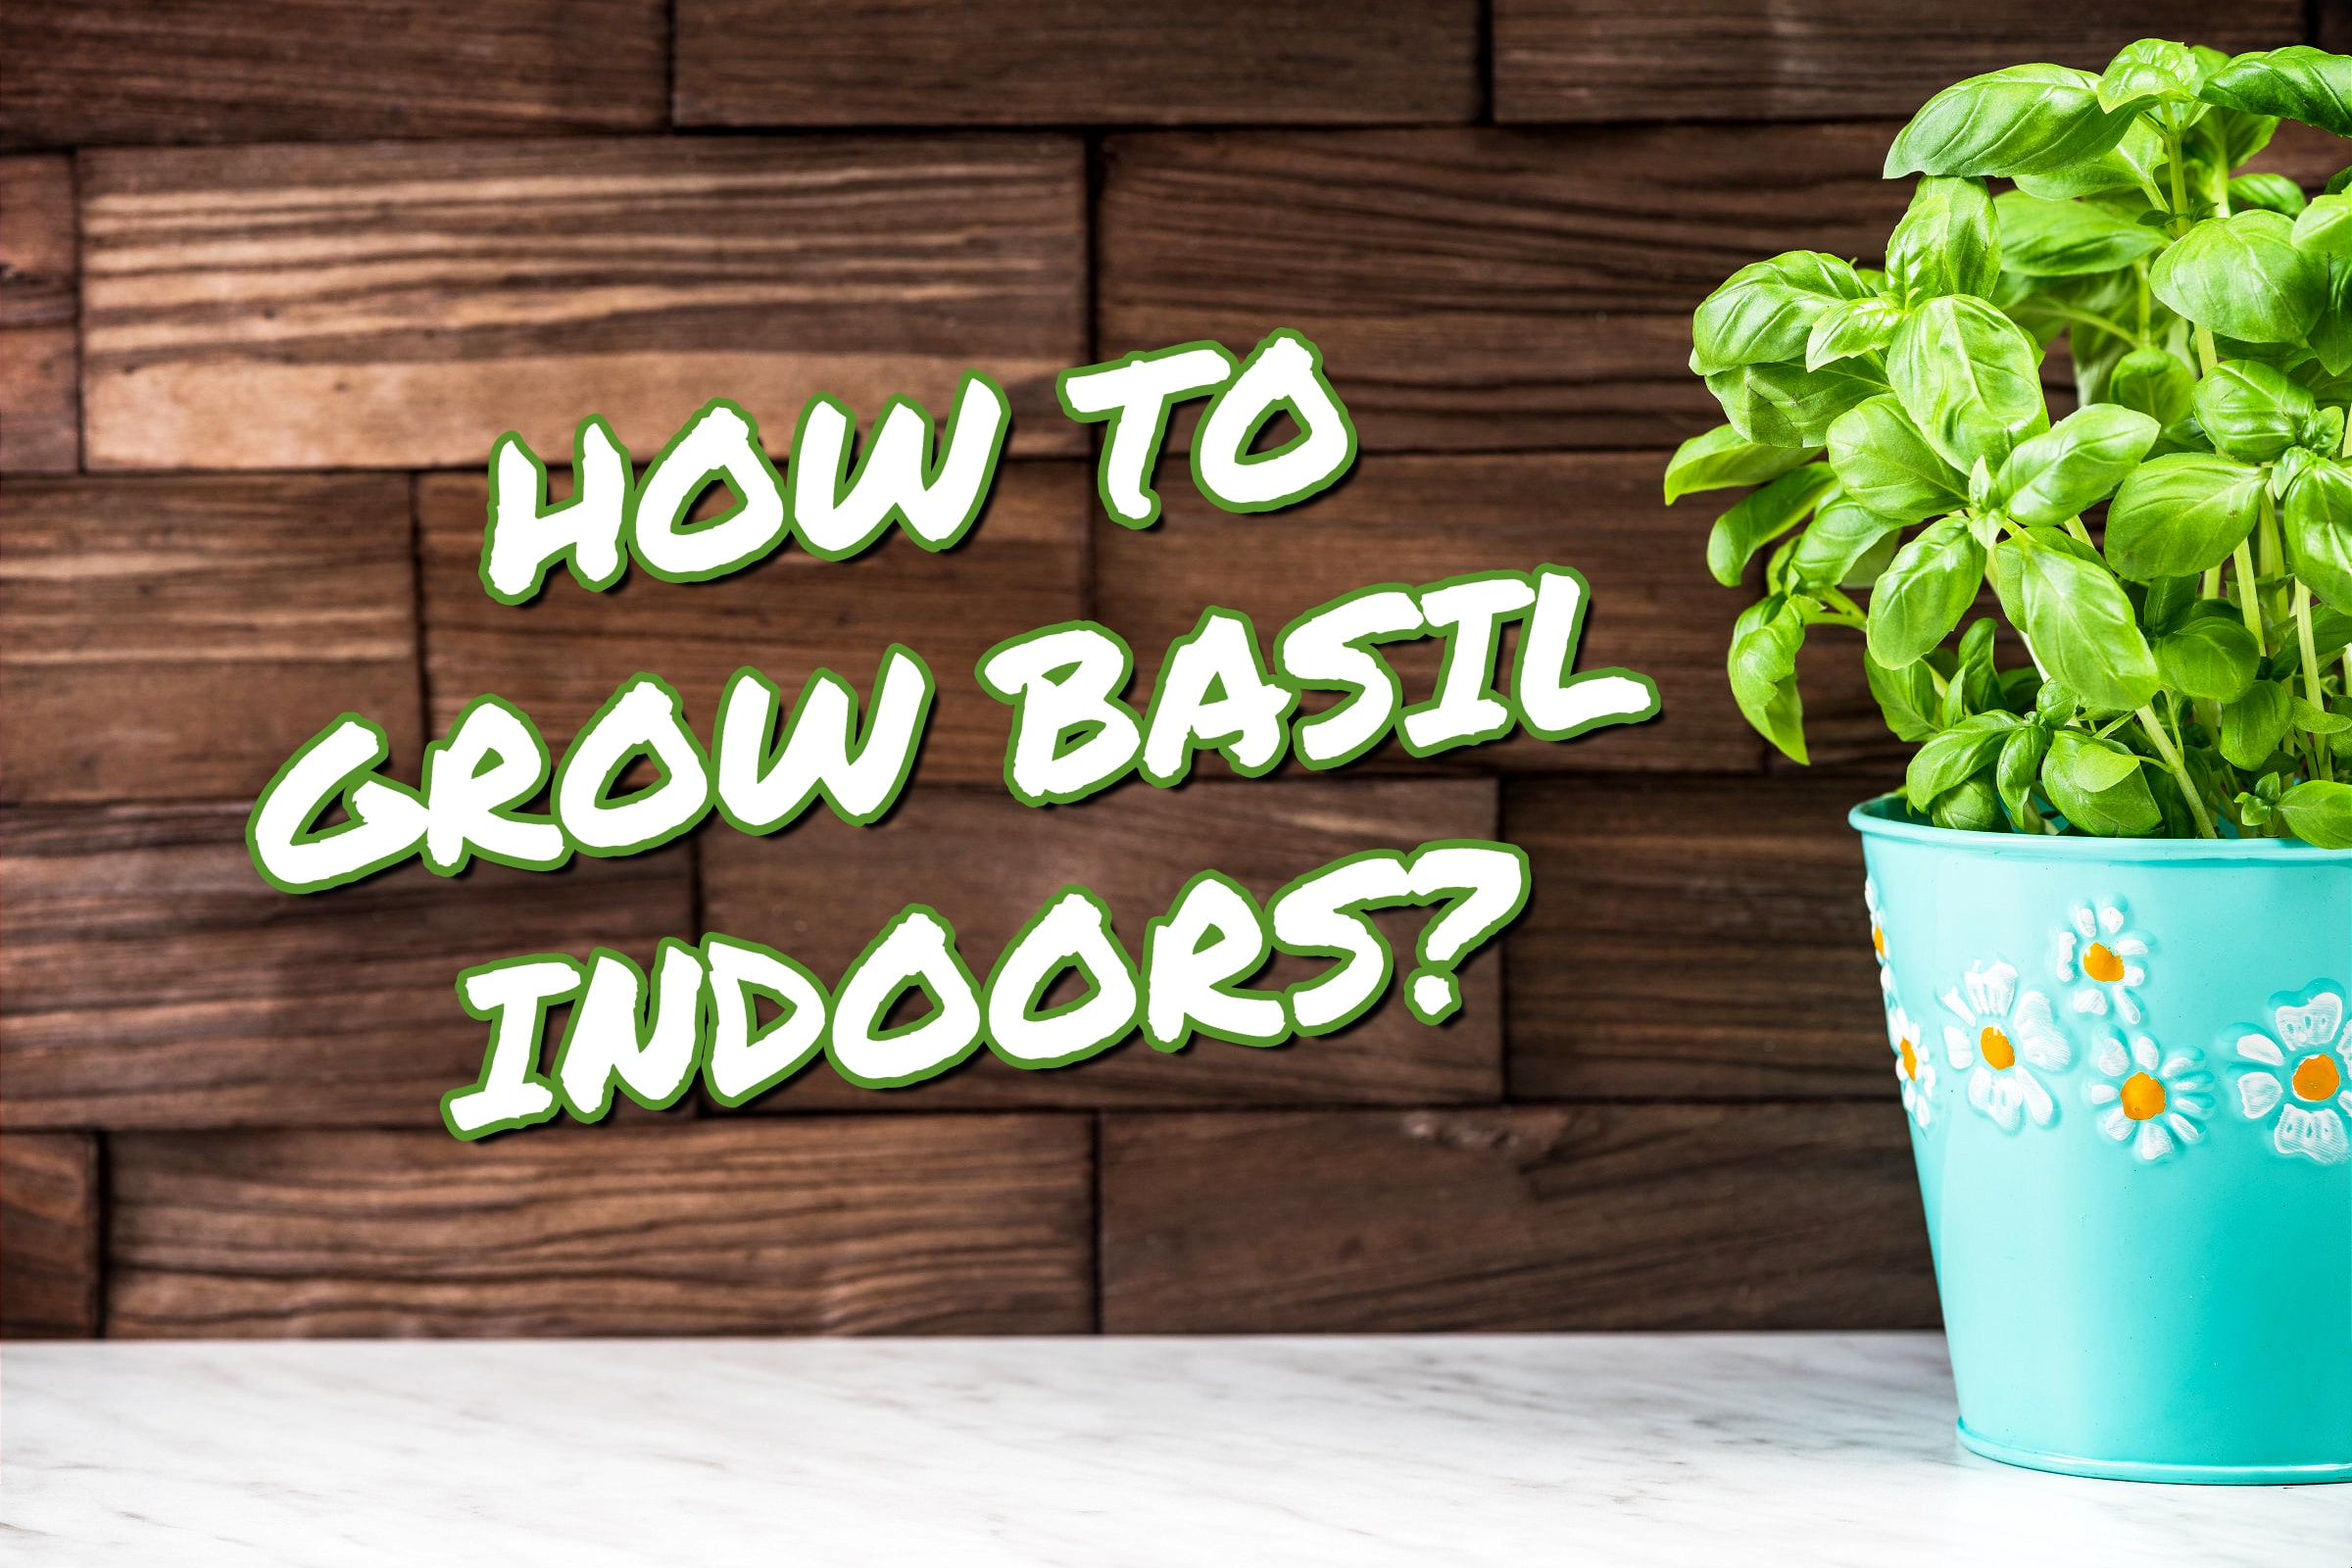 How To Grow Basil Indoors (Basil Pot On The Right)